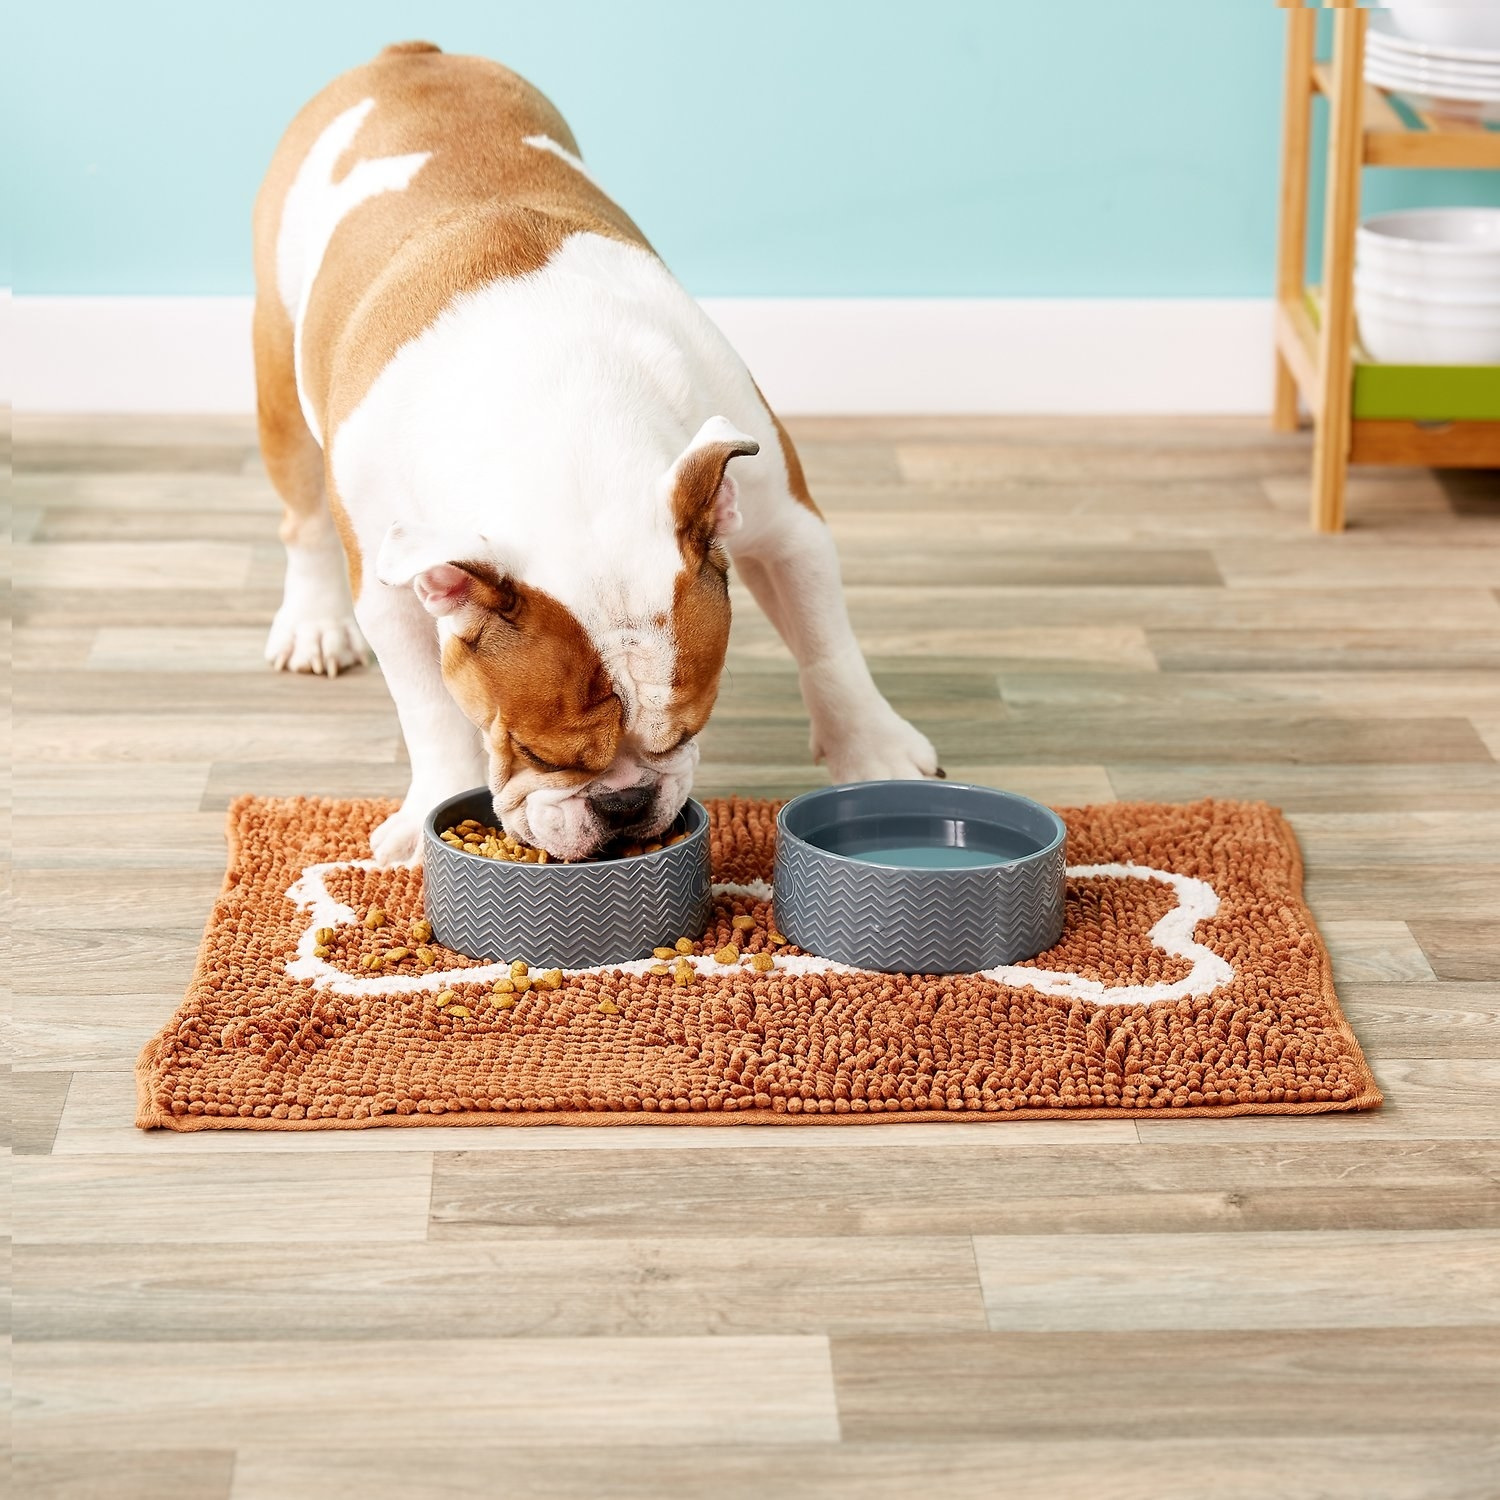 A dog eats from a bowl placed on top of the caramel brown Soggy Doggy Slopmat Microfiber Placemat